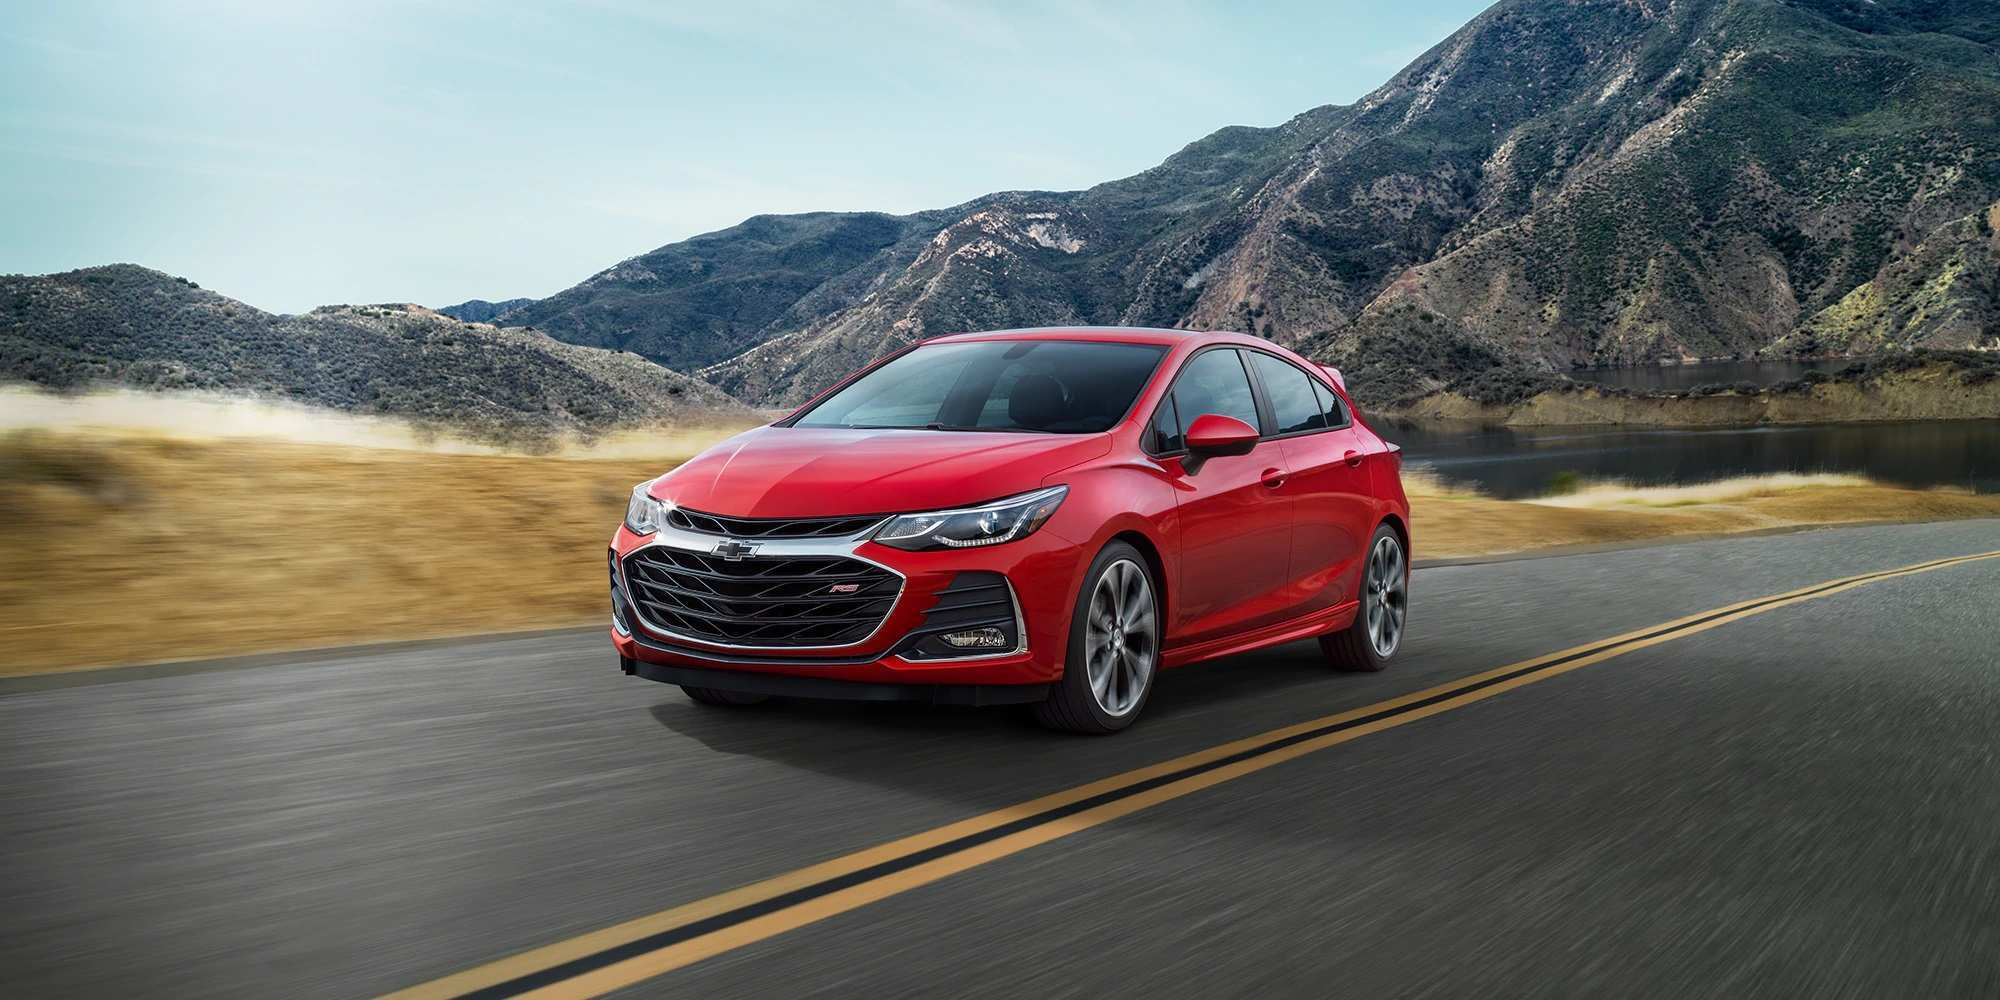 33 Great 2020 Chevrolet Cruze Picture with 2020 Chevrolet Cruze